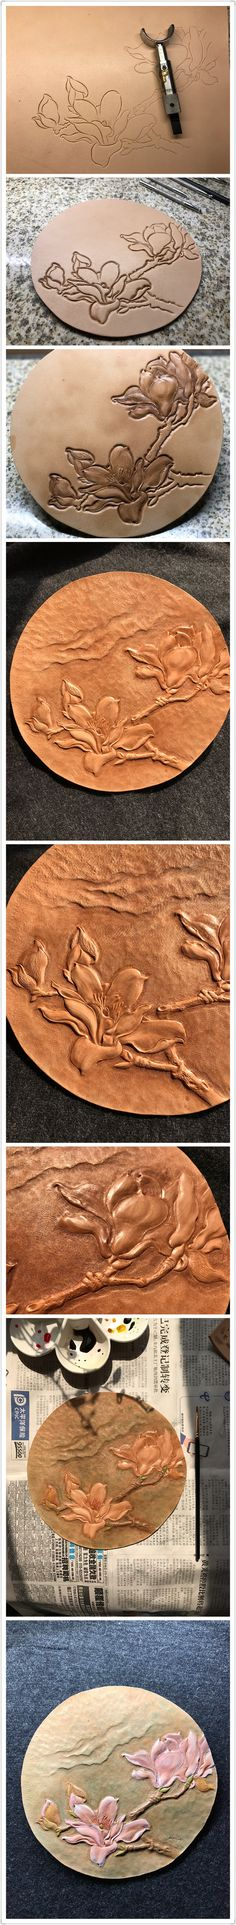 The procedure of spring flowers leather carving#Leather #carving